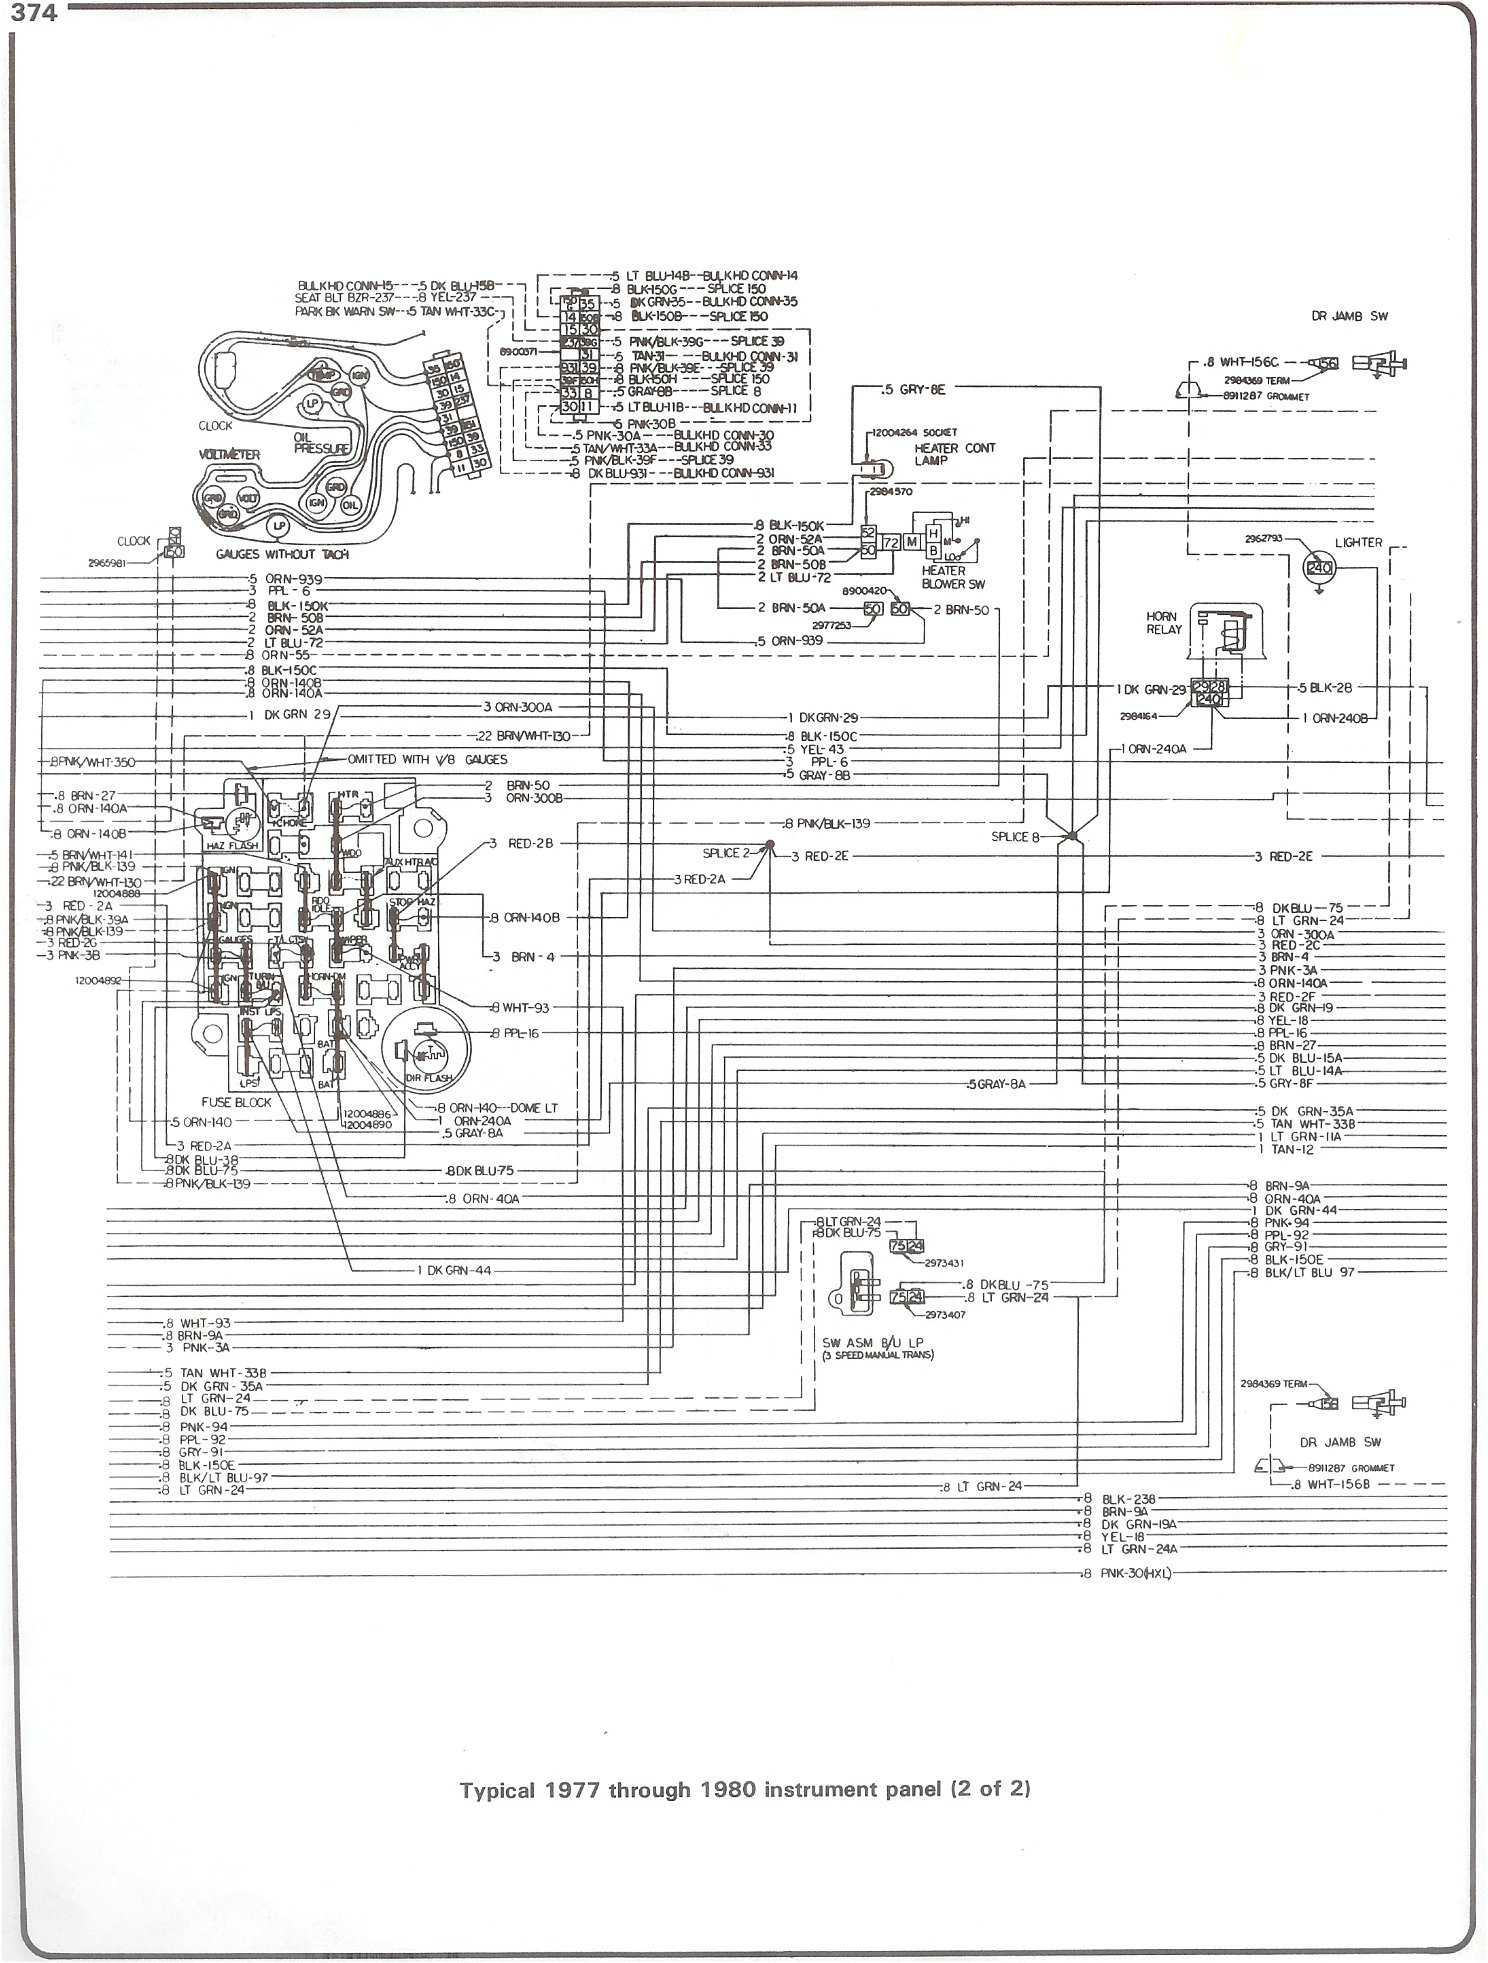 77 80_instrument_pg2 1978 chevy truck wiring diagram chevy malibu ignition wiring 1978 chevy truck fuse box diagram at gsmx.co